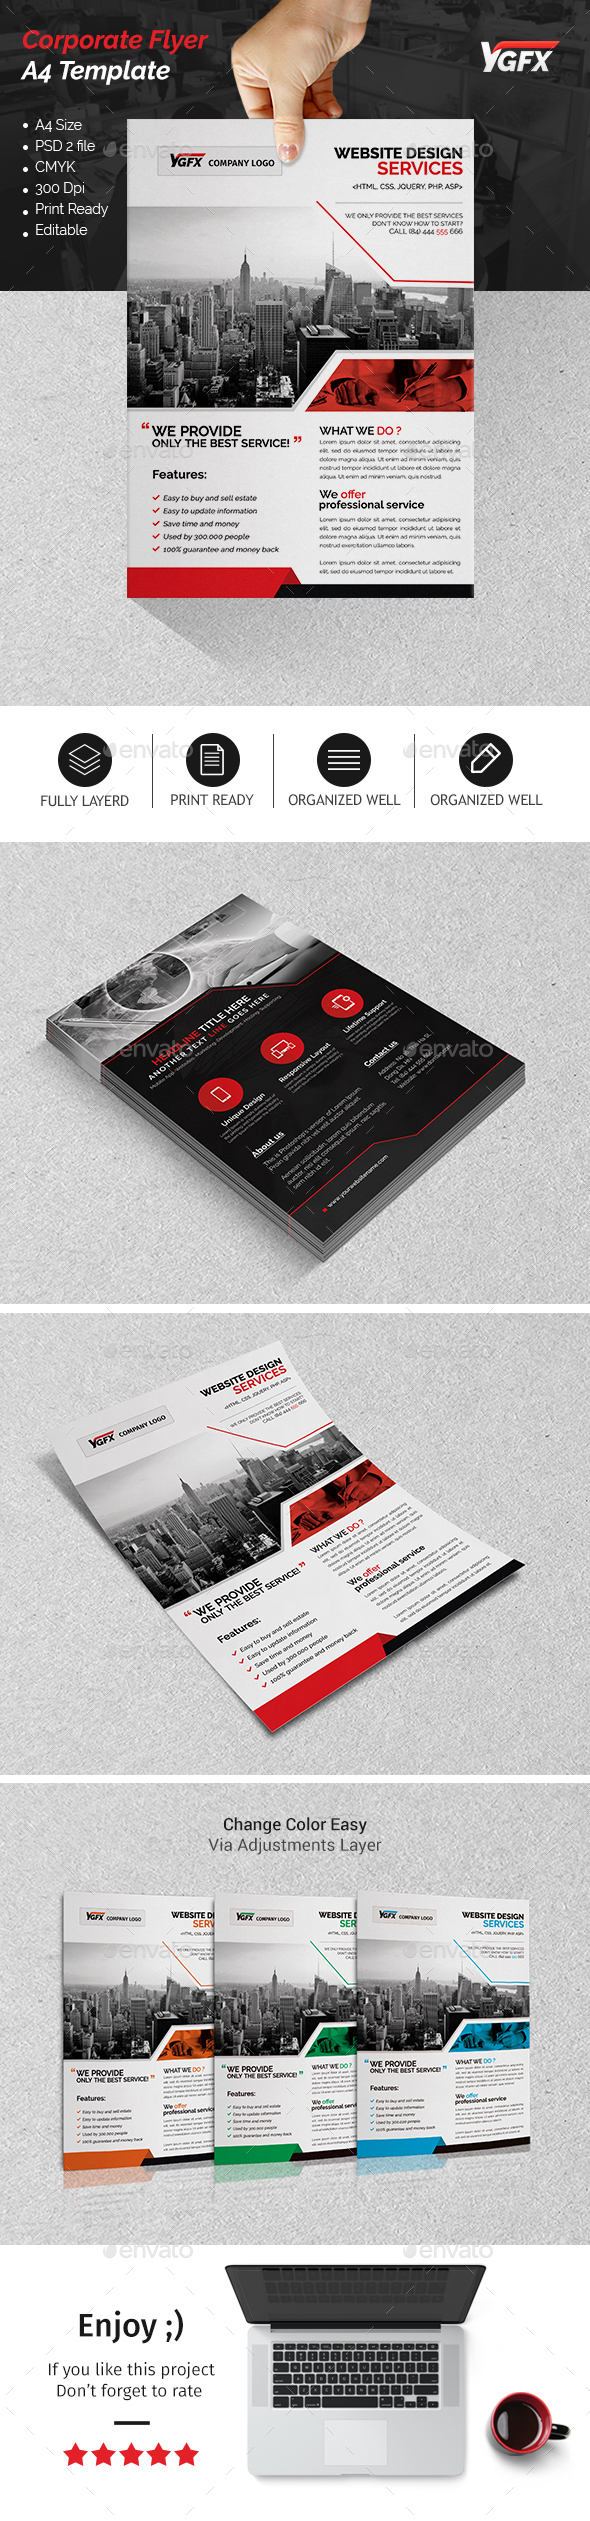 A4 Corporate Flyer 06 - Corporate Flyers